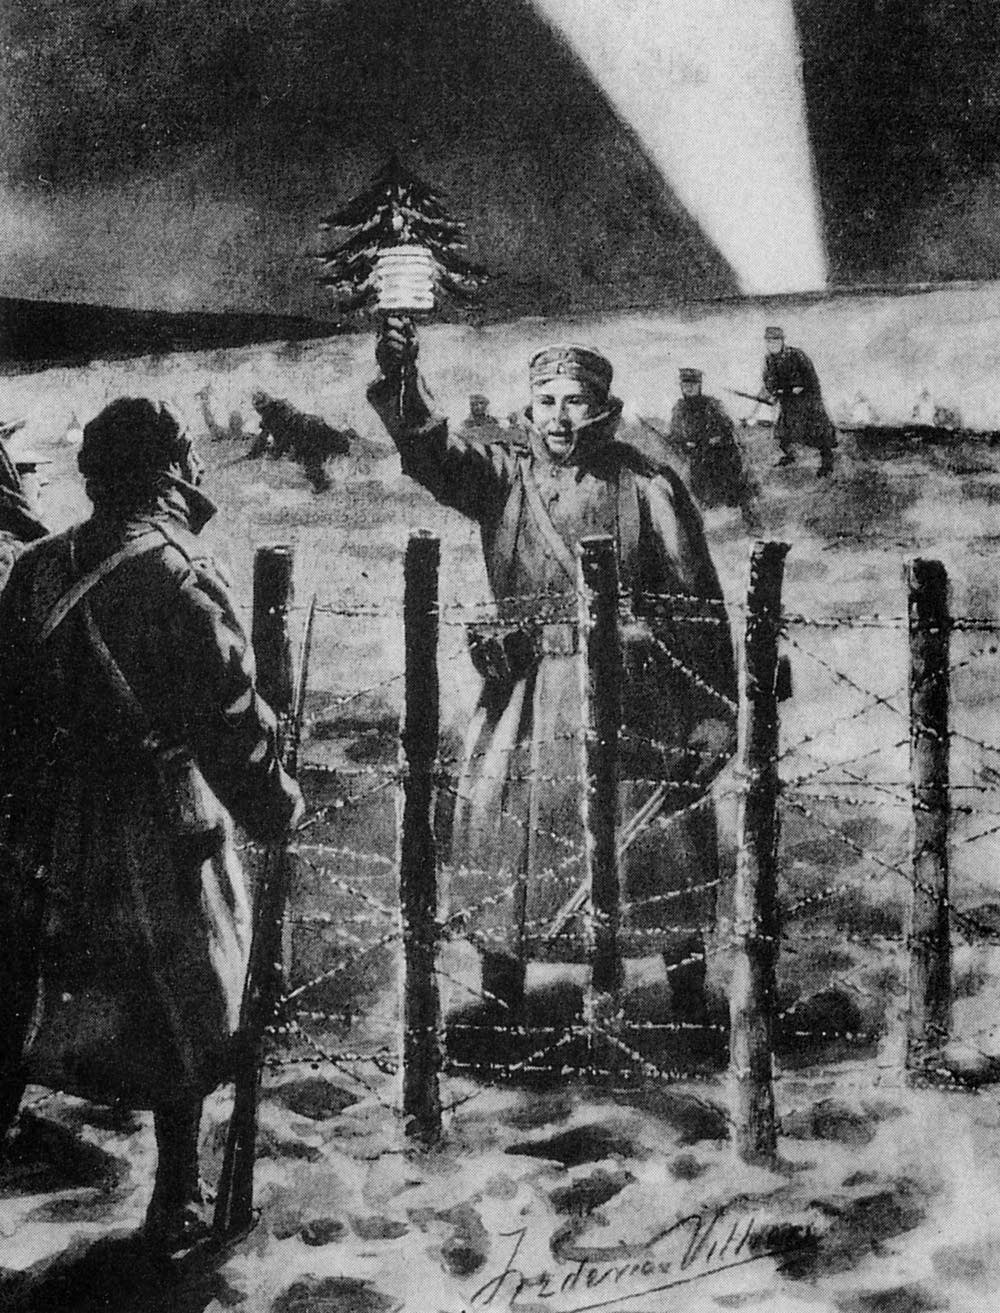 Christmas Truce Of 1914.All Is Calm The Christmas Truce Of 1914 The Current